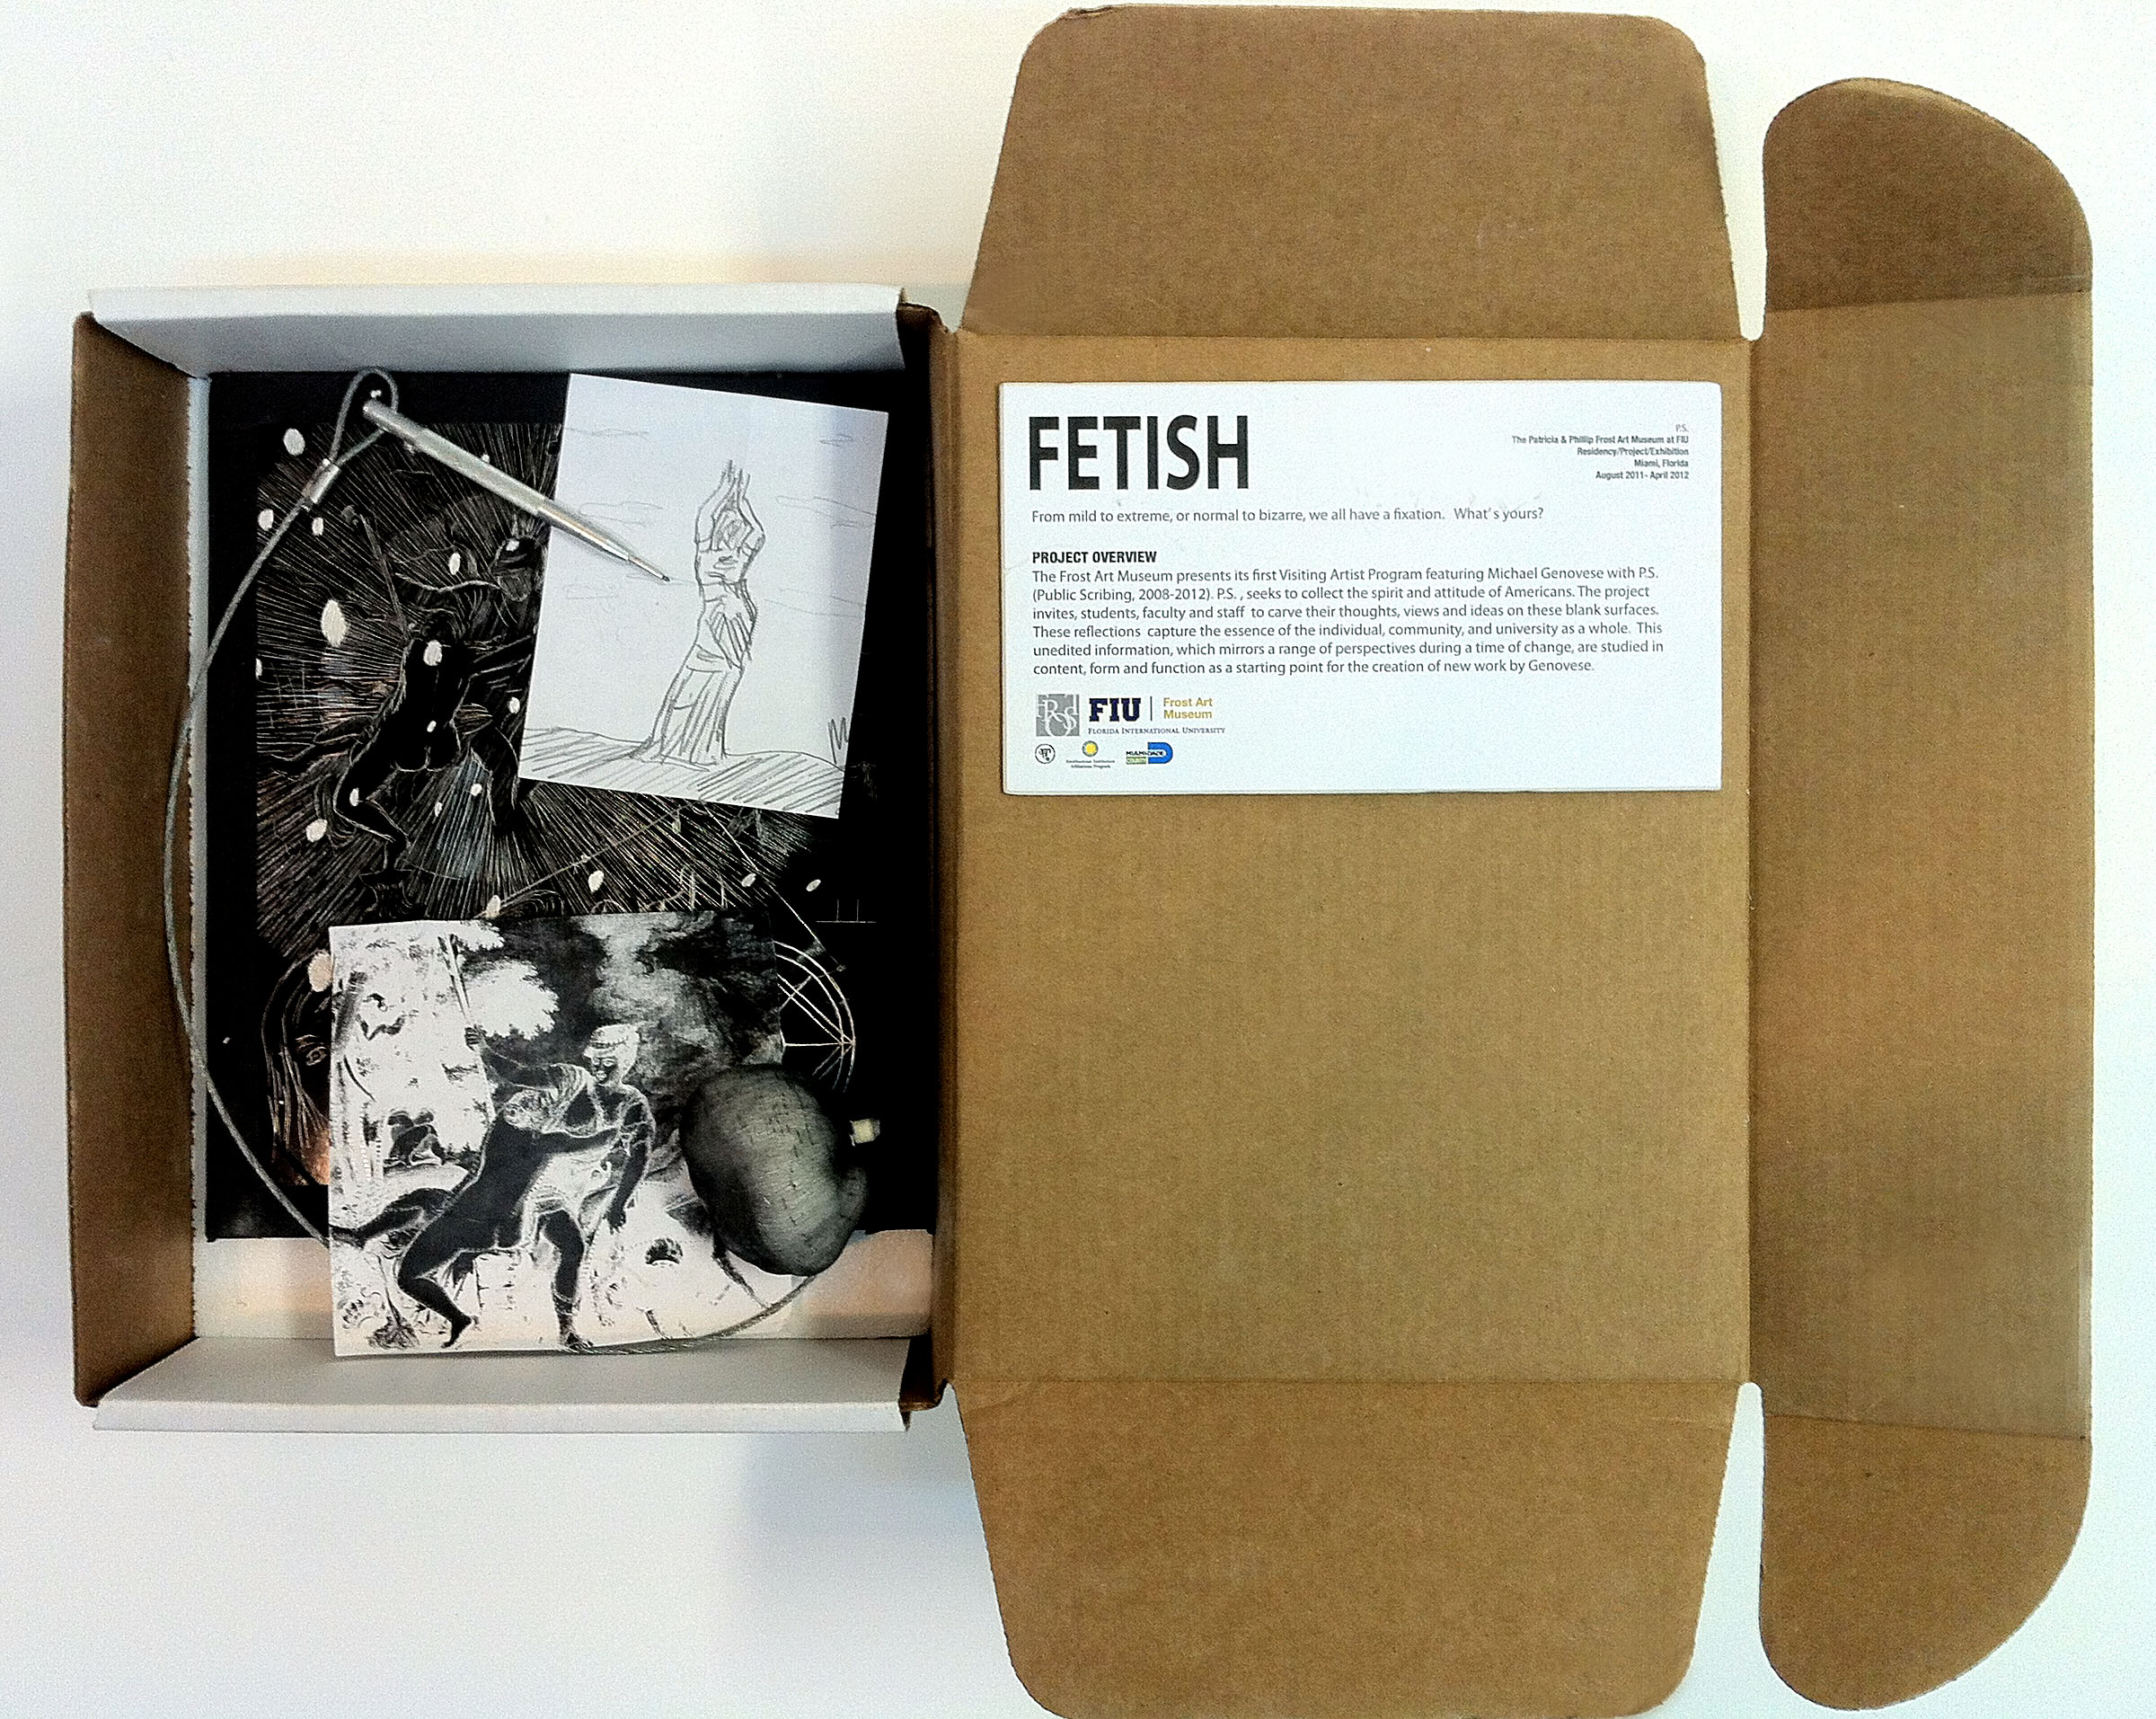 Fluxus edition, Blank aluminum composite material, subject, incision tool, pounce kit. Various themes and perforated patterns. Ed. 50 unique, 2011